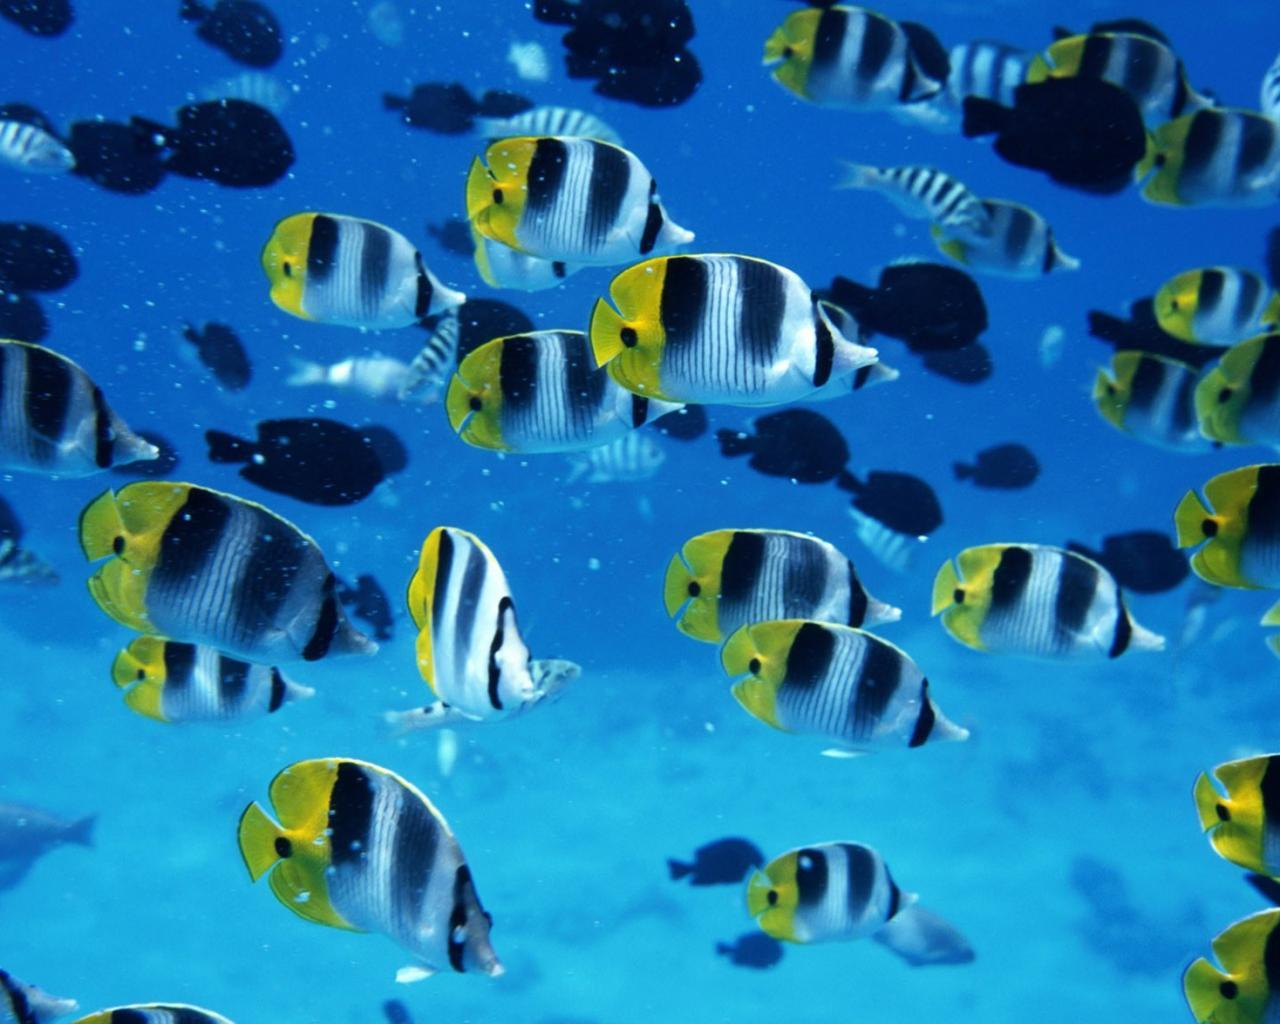 20647 download wallpaper Animals, Sea, Fishes screensavers and pictures for free